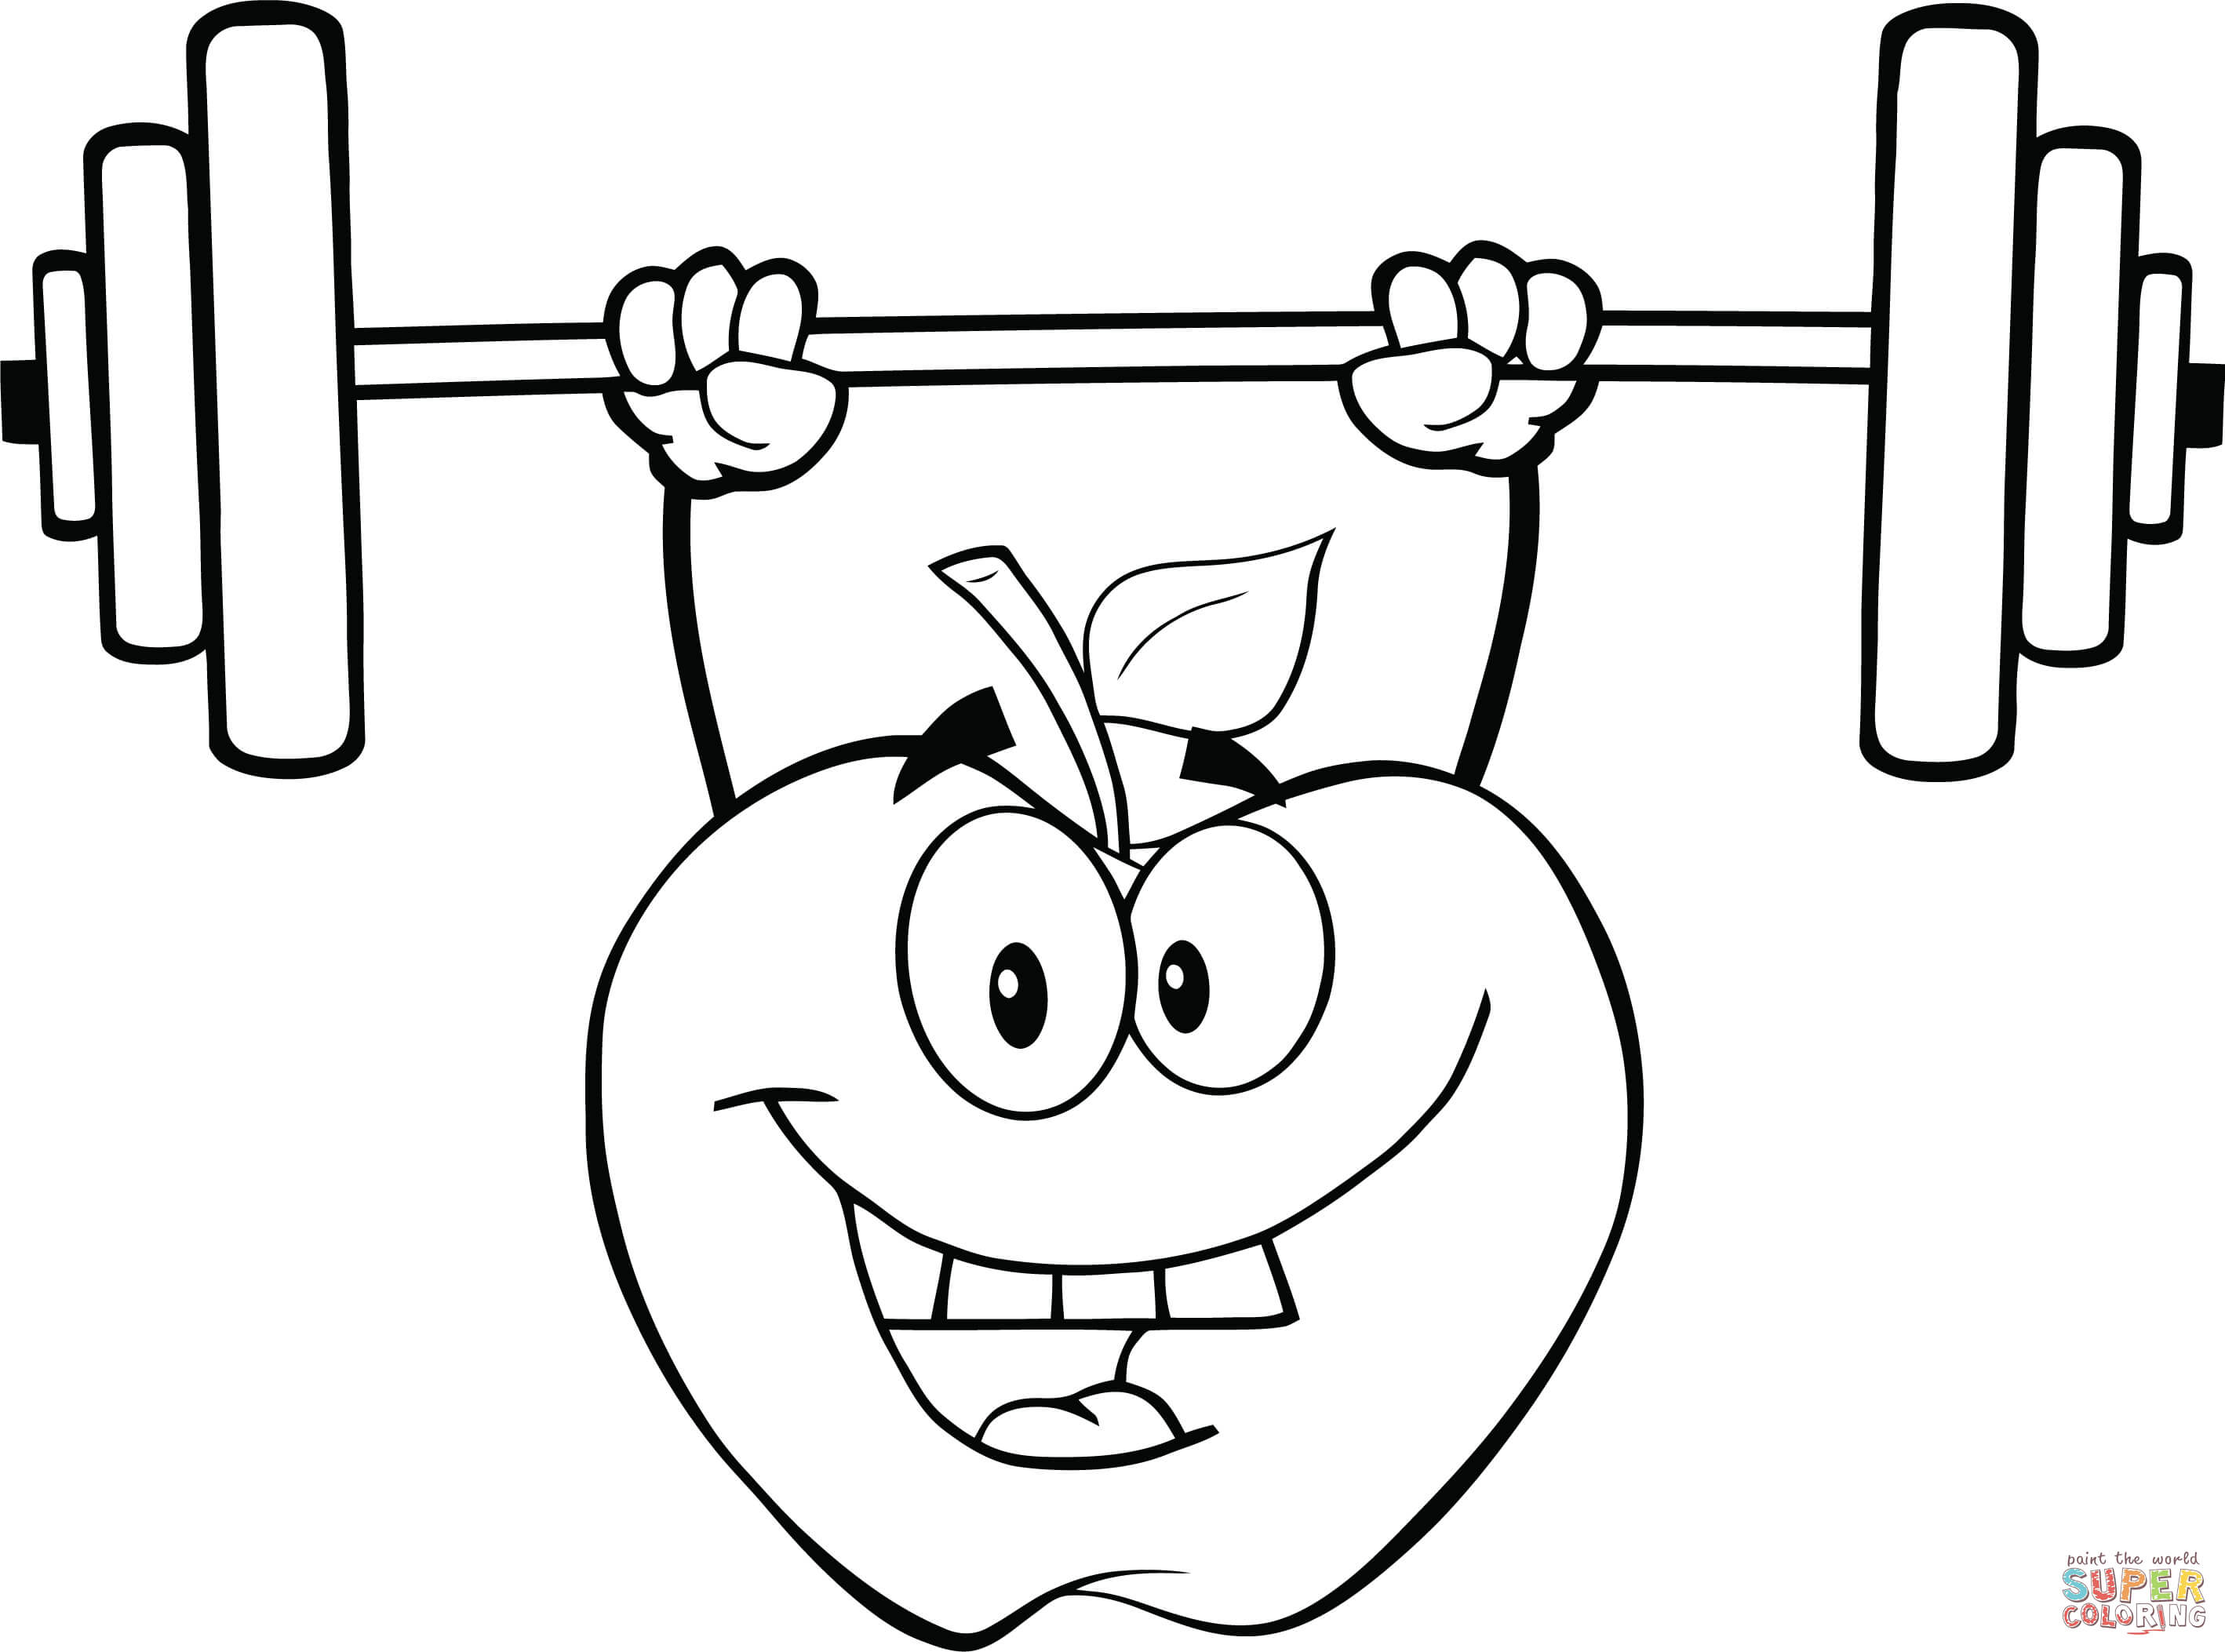 Apple Cartoon Character Lifting Weights coloring page